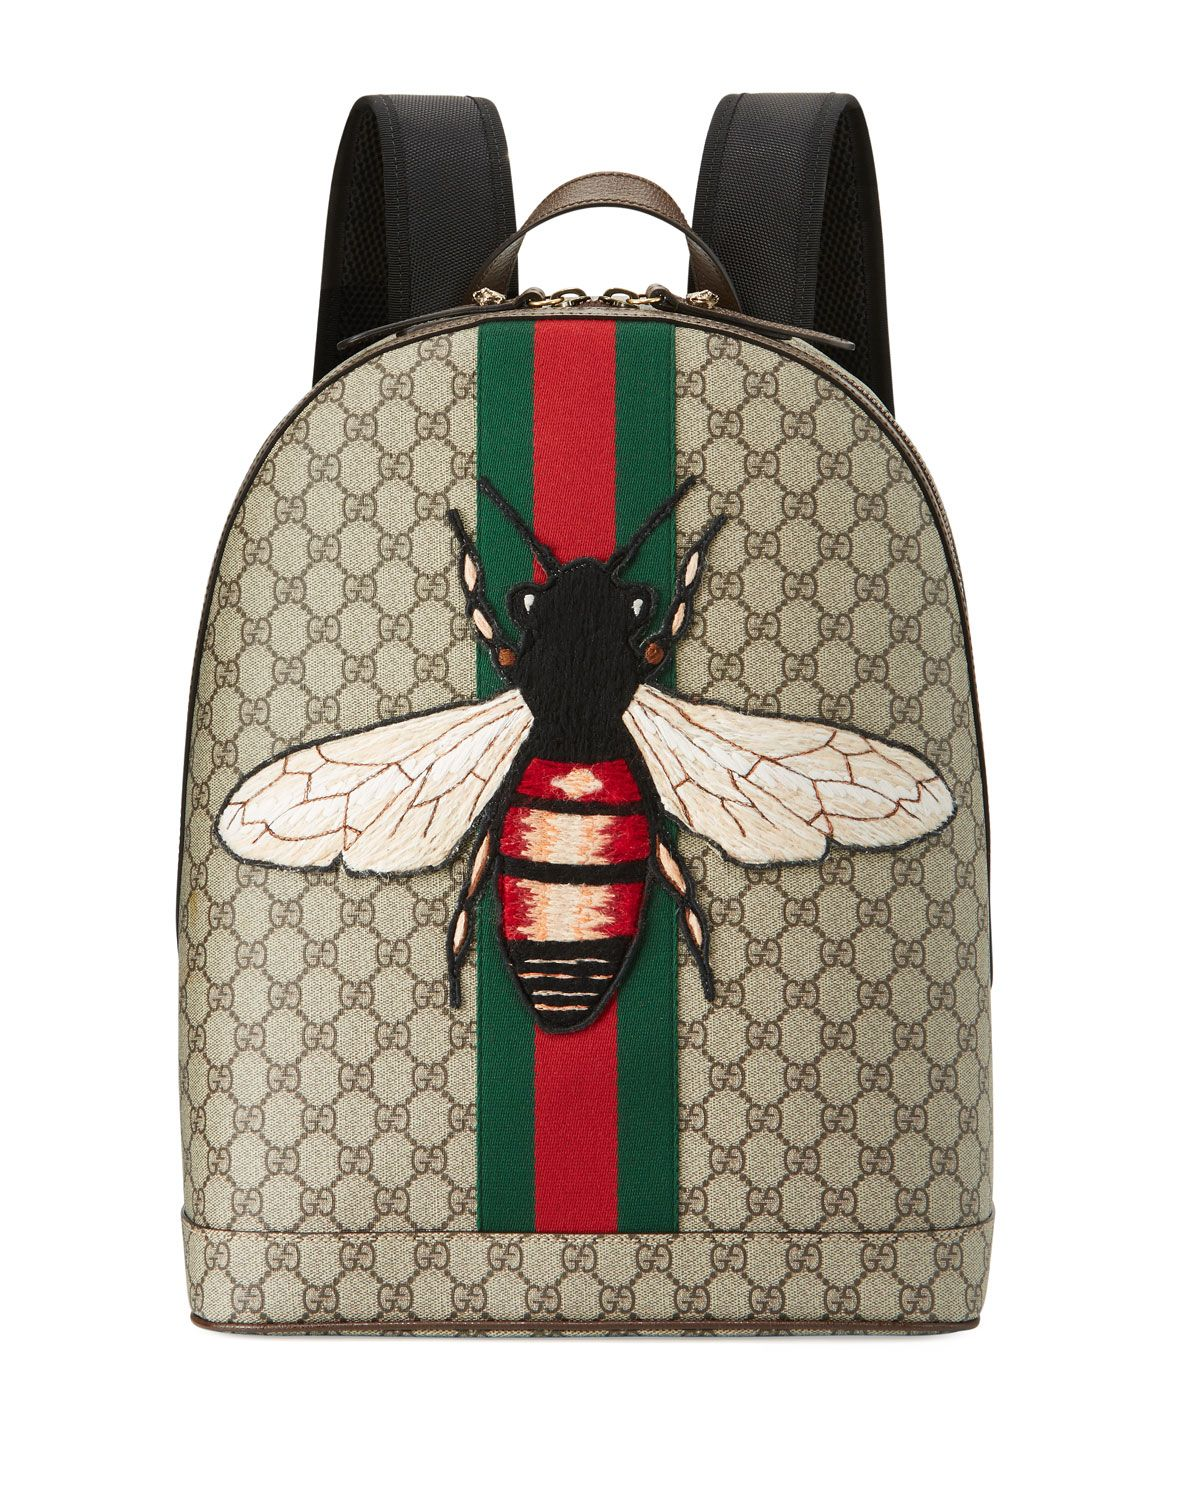 ced53c0391d Gucci Animalier backpack in GG supreme canvas with hand-embroidered and  -applied bee appliqu. Signature green red green web stripe down center  front. Brown ...